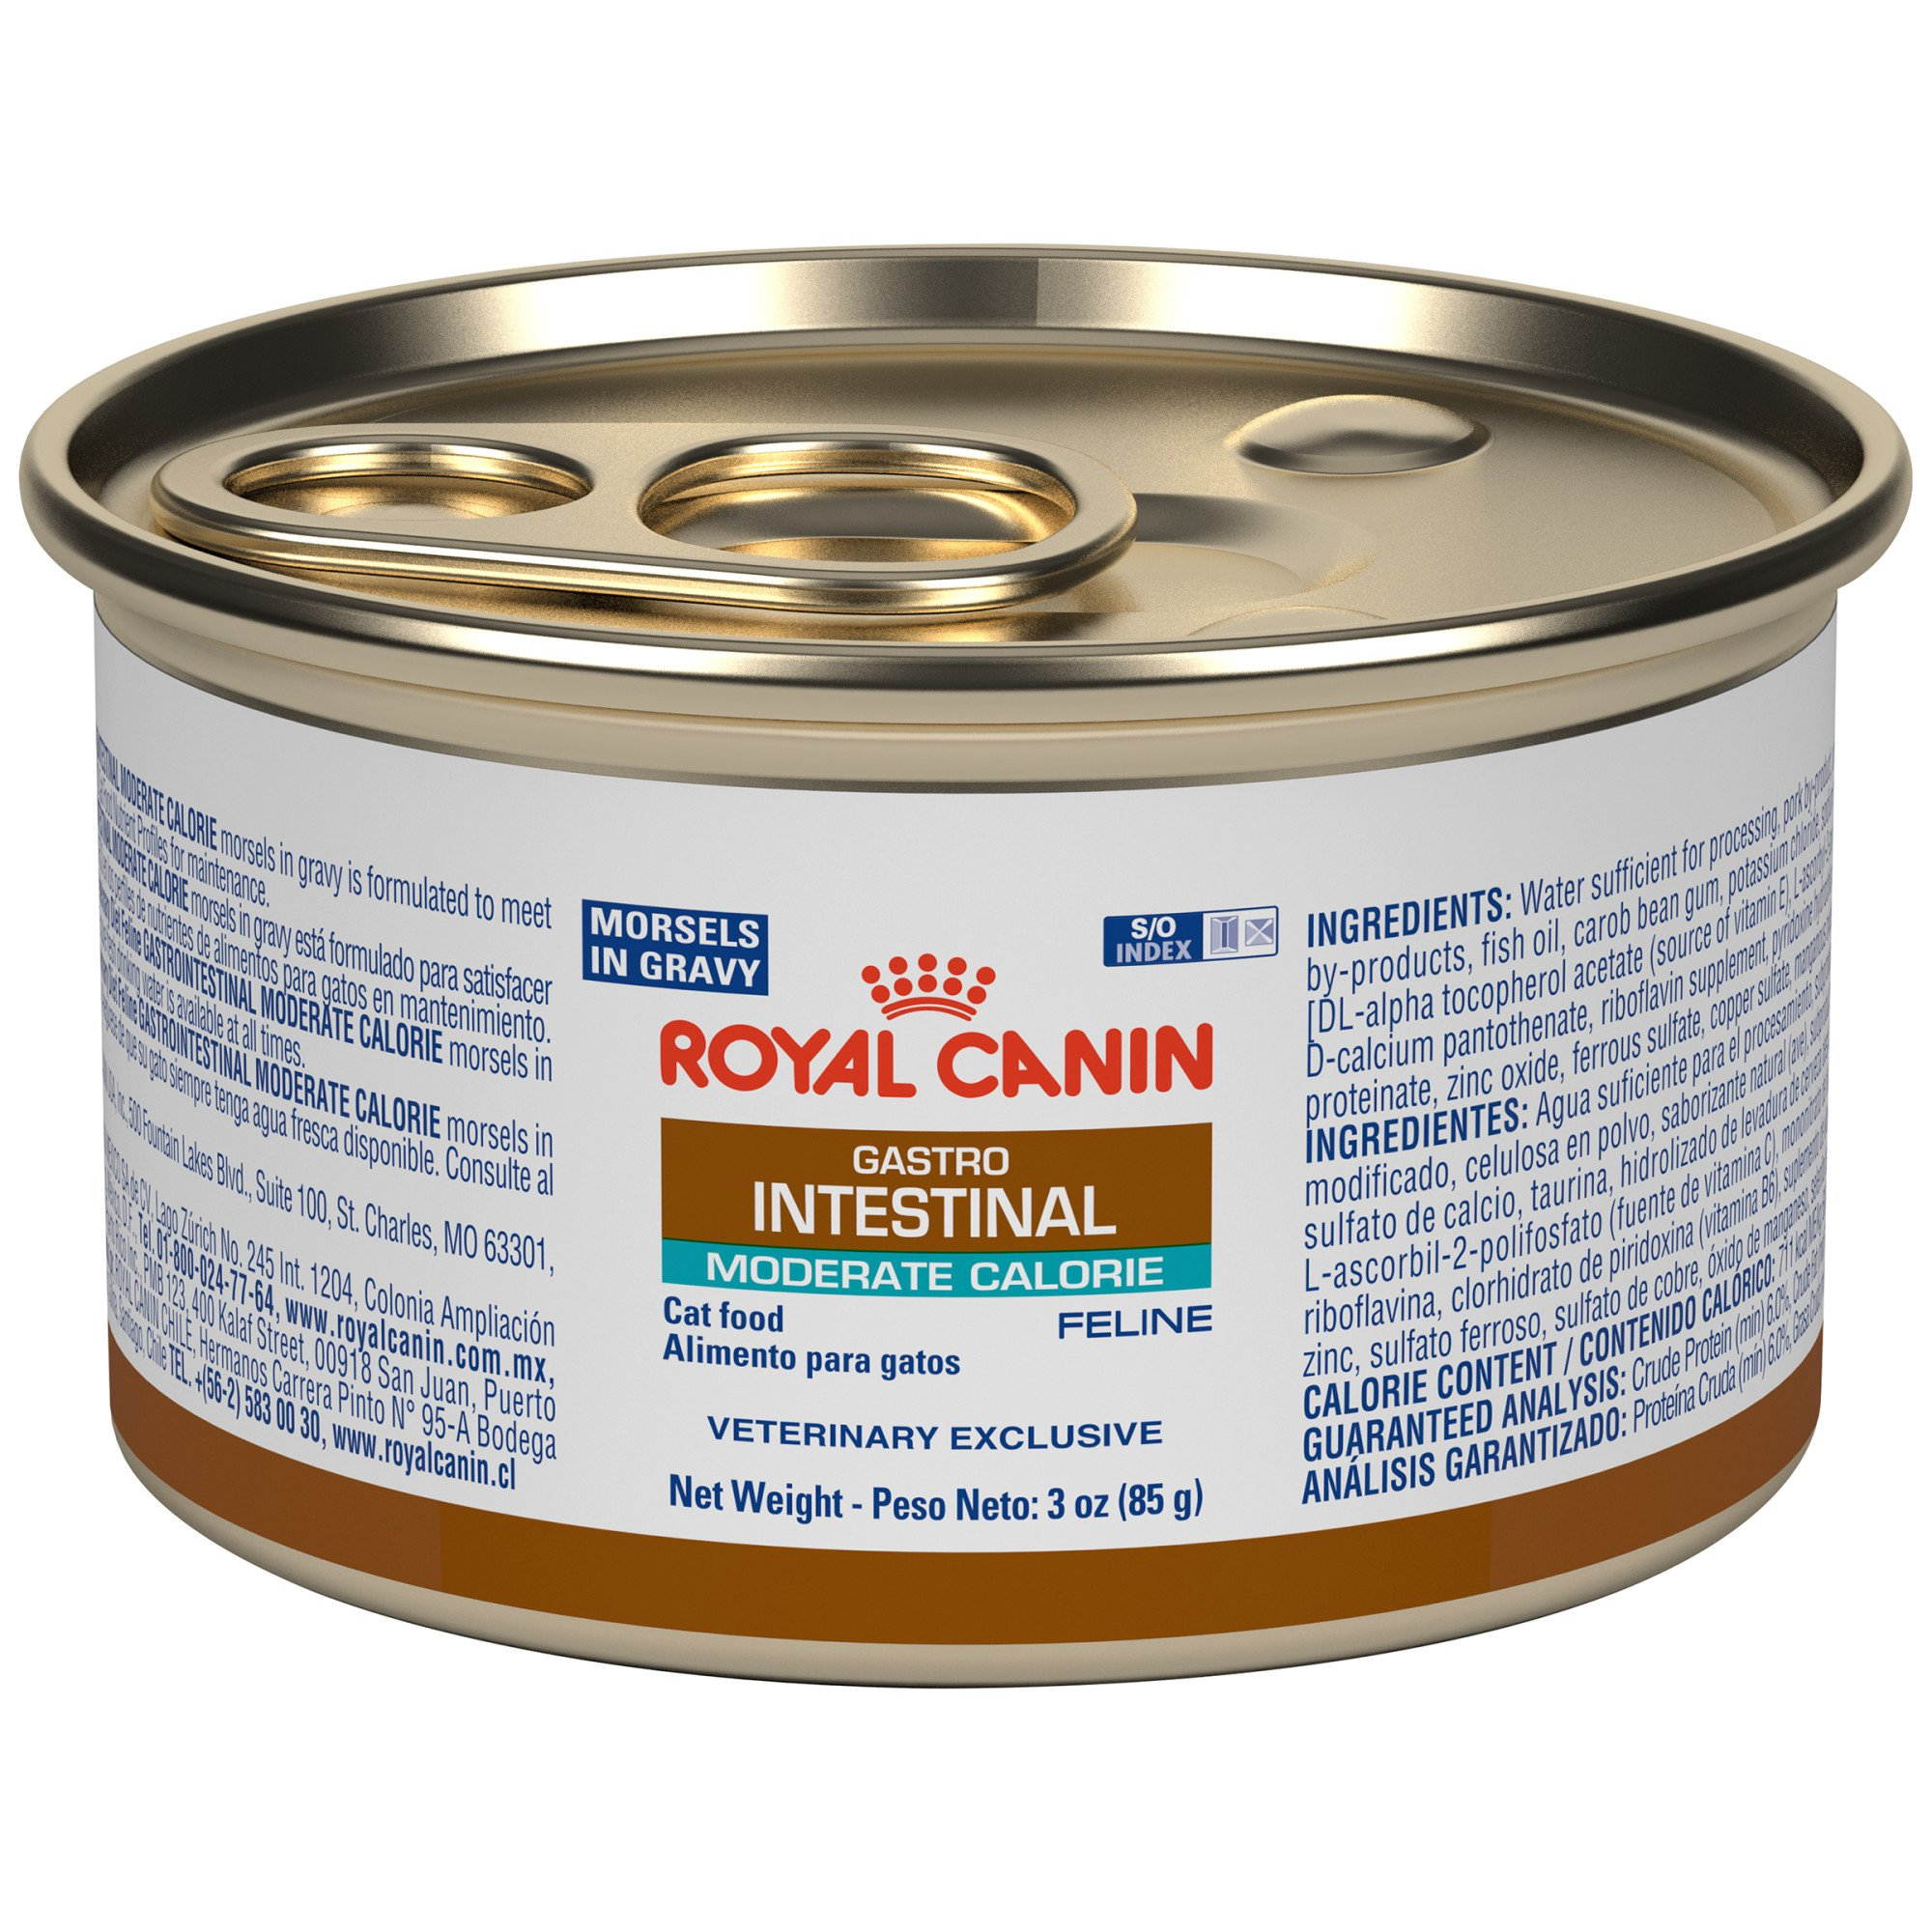 Royal Canin Gastrointestinal Canned Cat Food